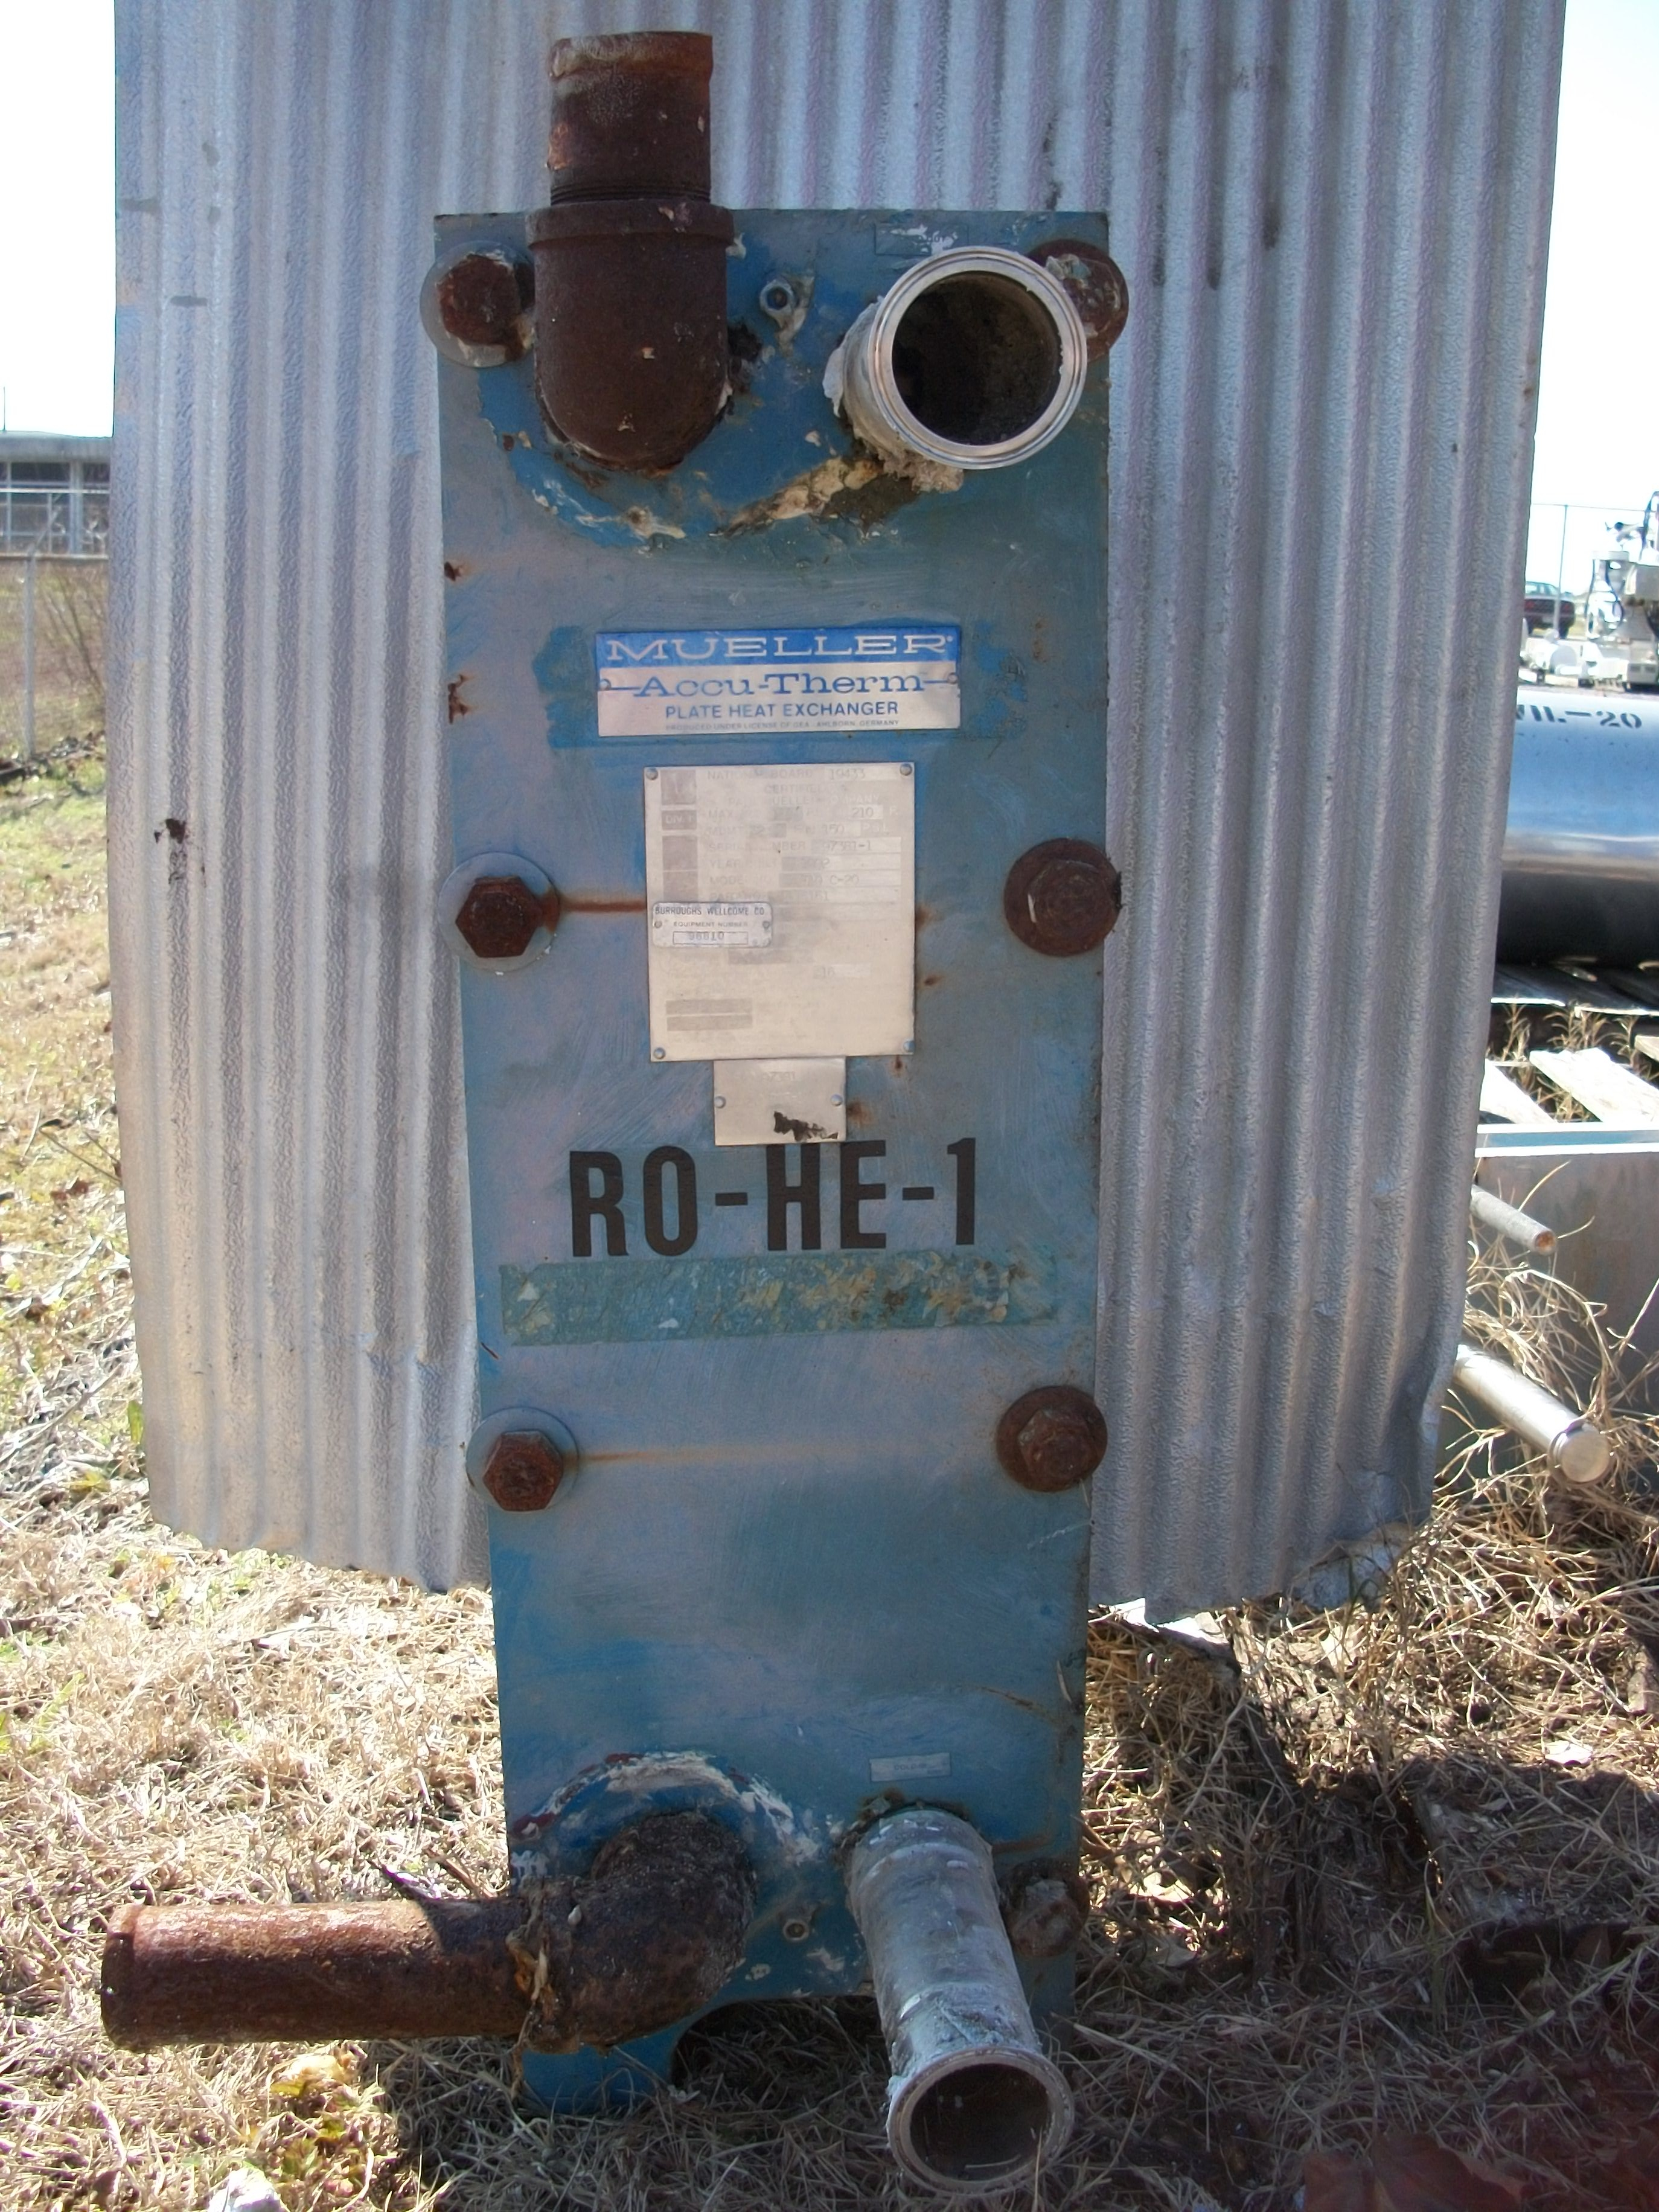 Used Mueller Accu-Therm approximately 18 sq ft. plate heat exchanger